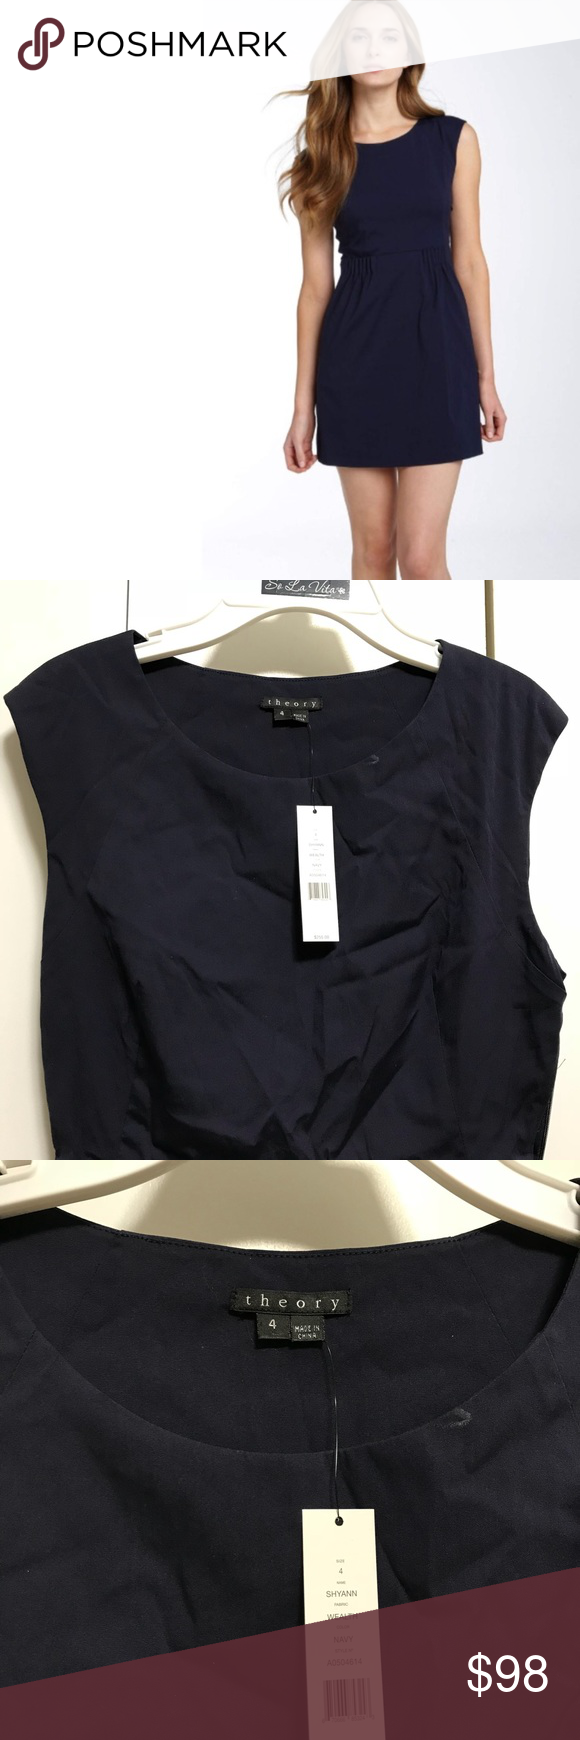 31c862d2ac Theory Navy Blue Dress Sz 4 Theory- Shyann wealth style dress with an  elastic band a little bit above the wait. Length 31. RN 98406.